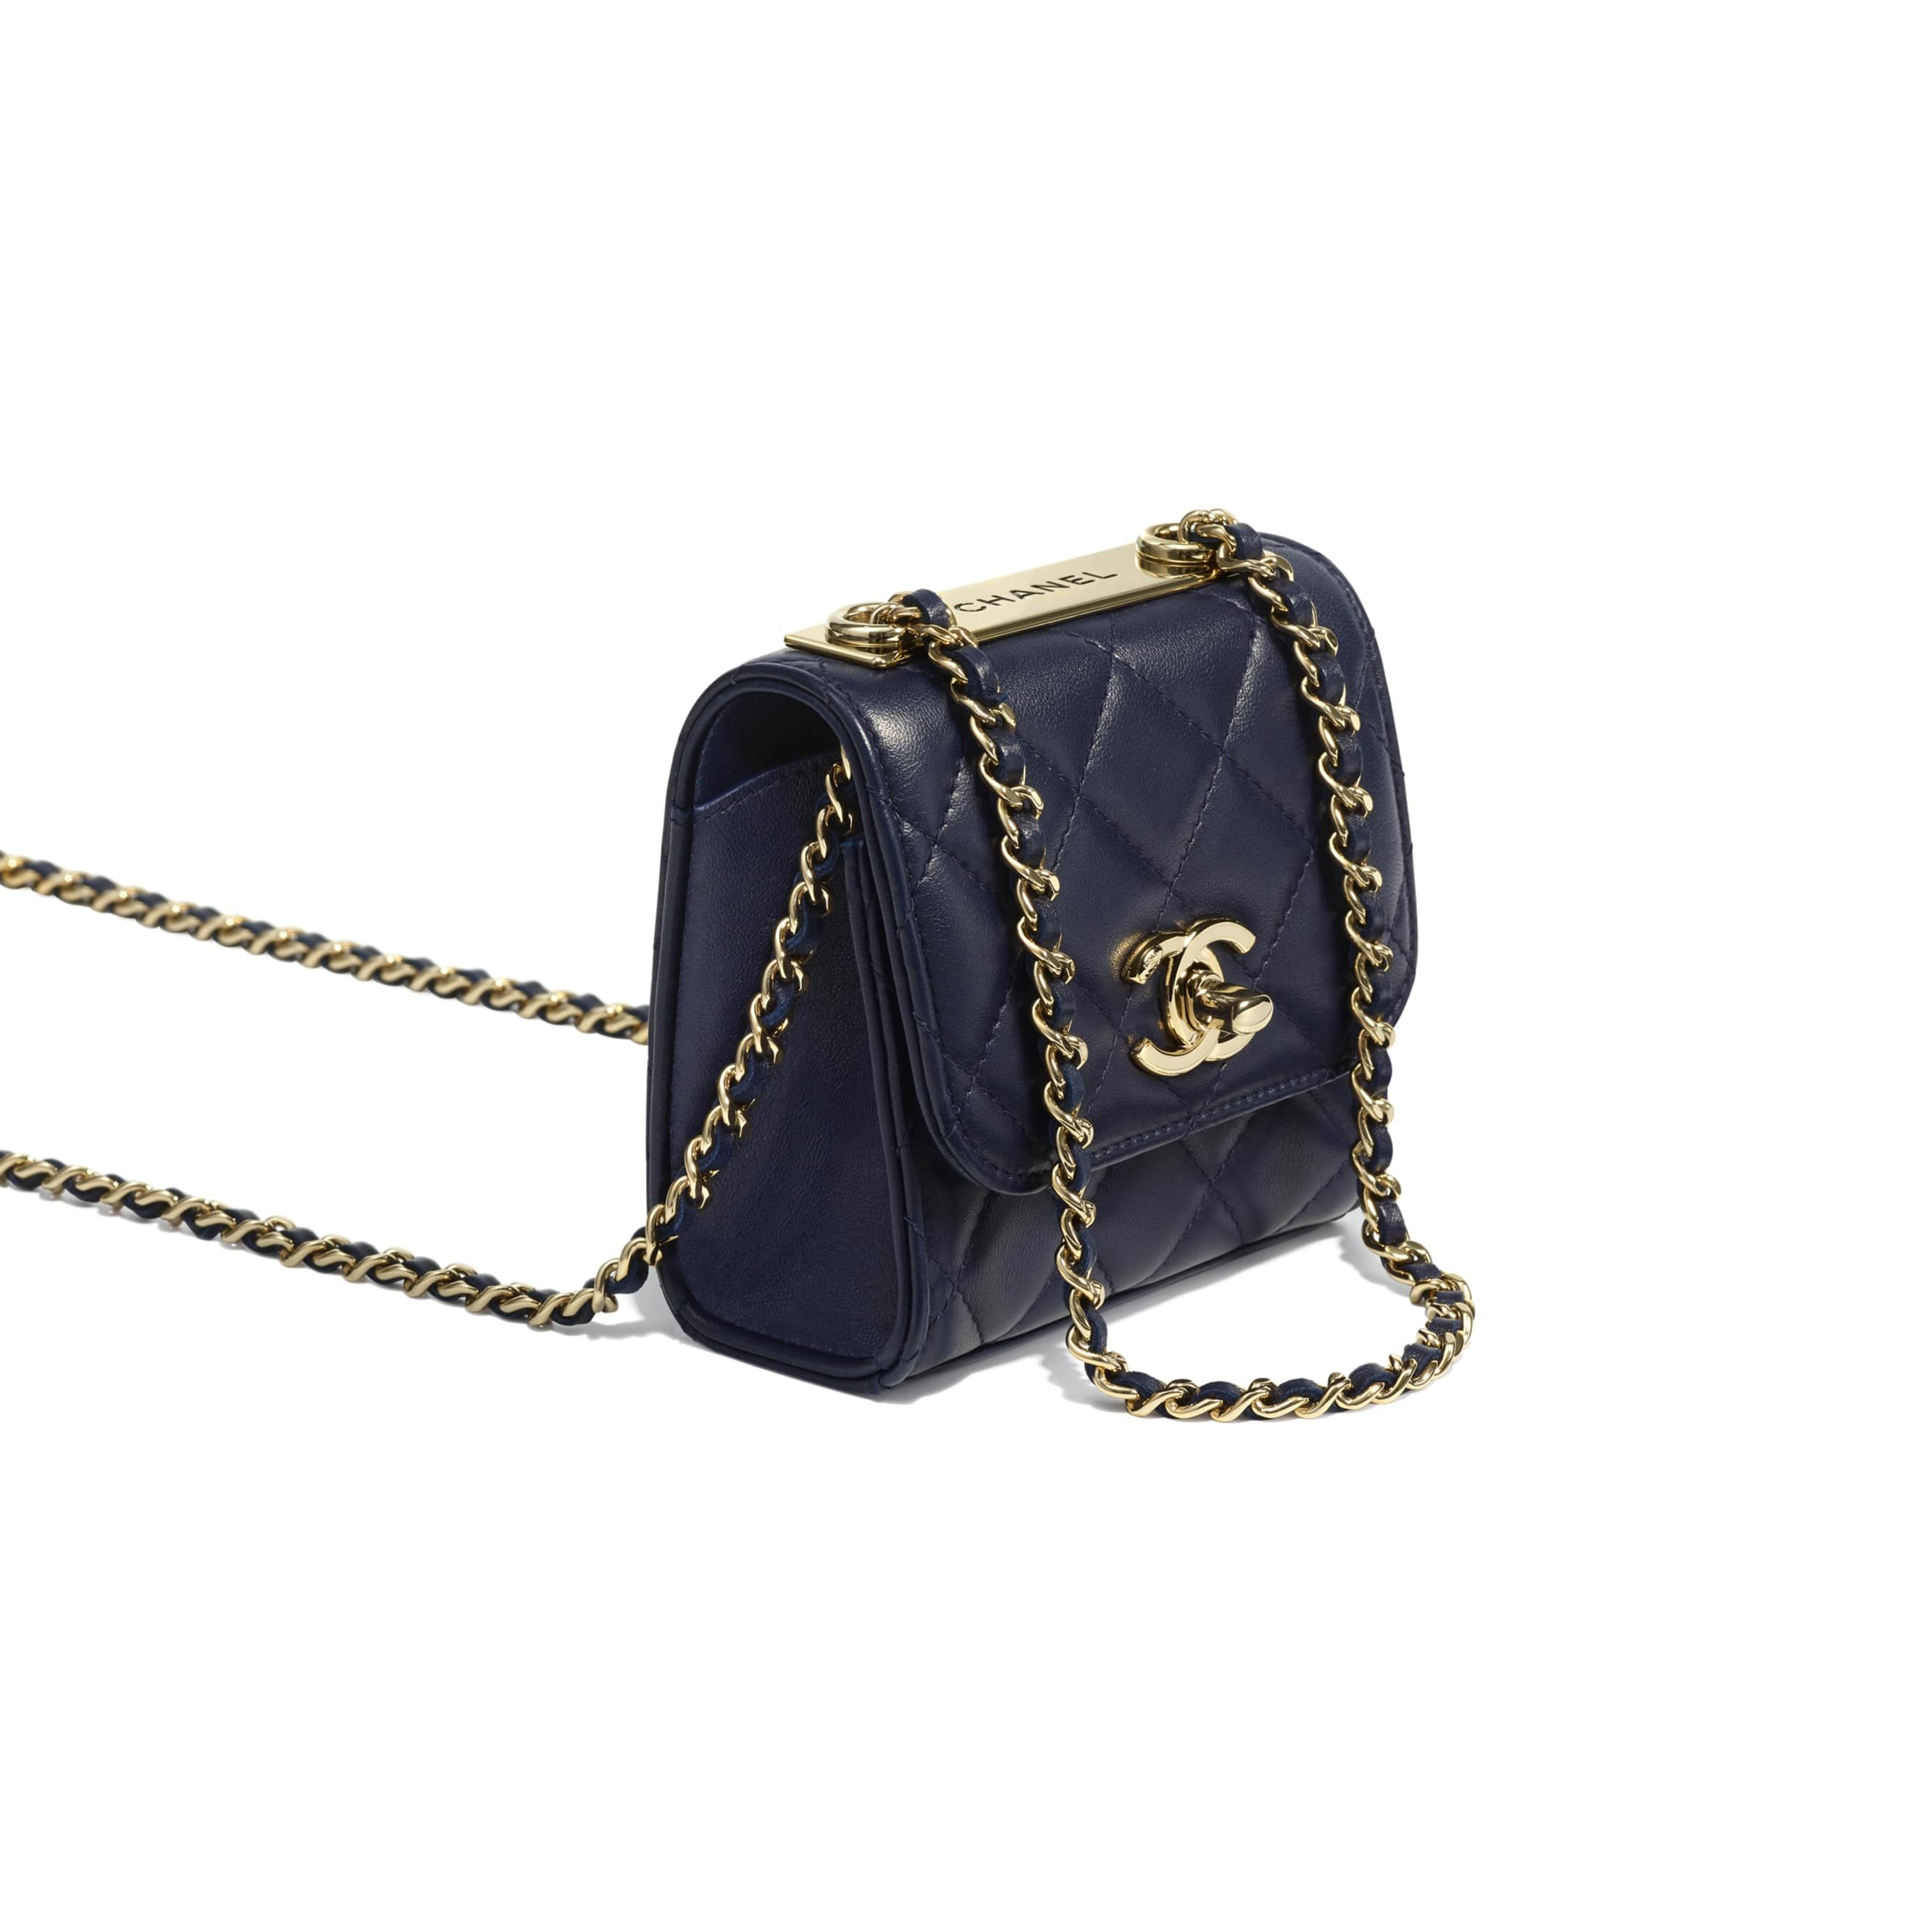 2c9a8faa5deb Lambskin   Gold-Tone Metal Navy Blue Clutch with Chain